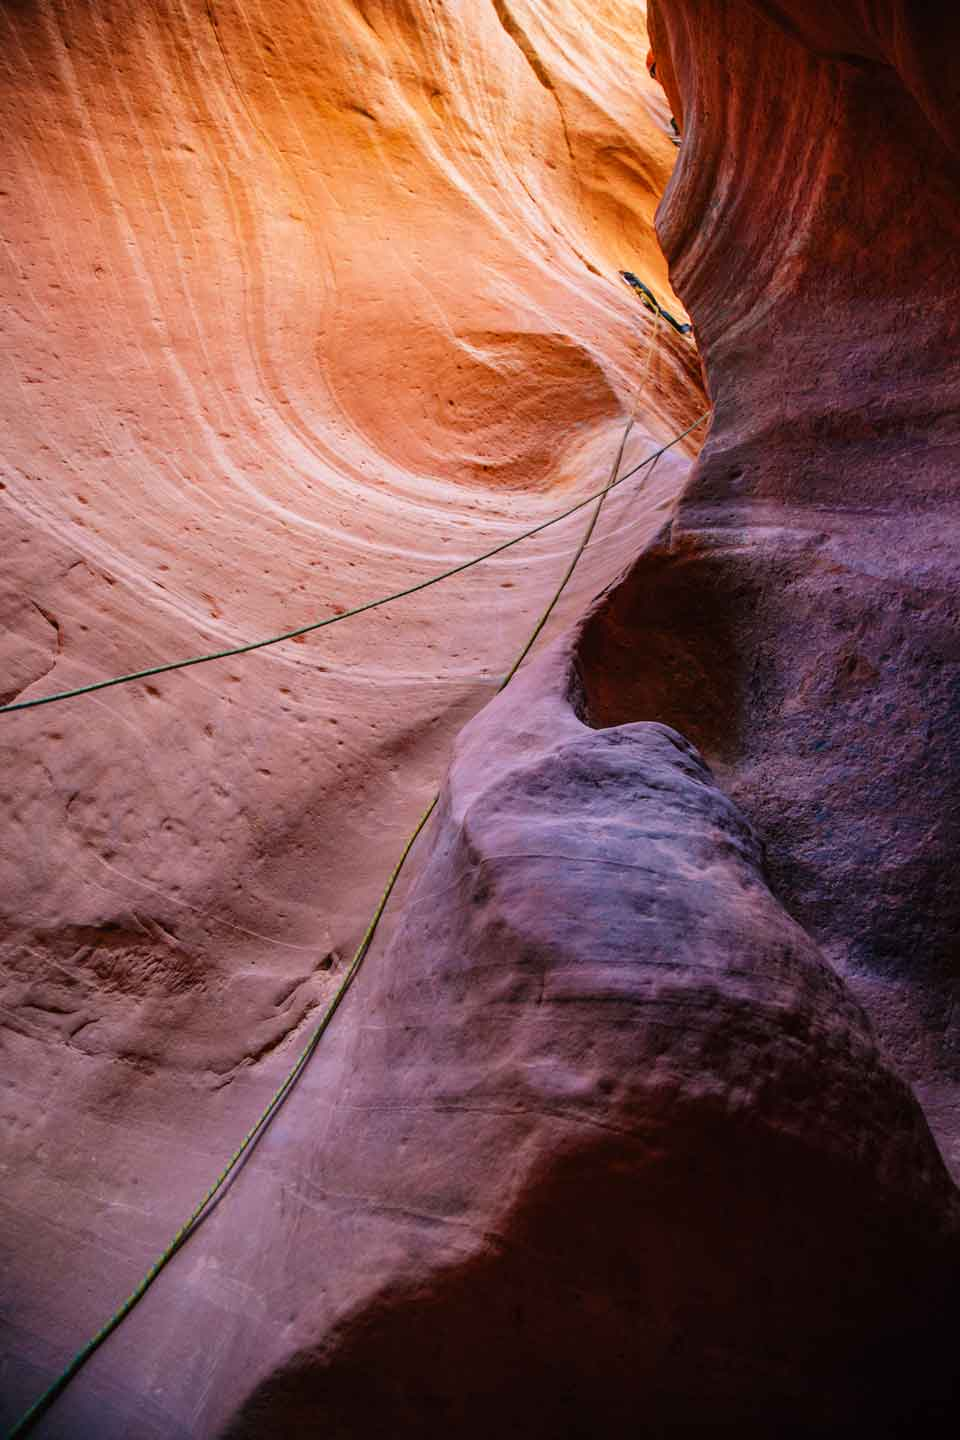 A pink and orange slot canyon with climbing ropes hanging down the walls